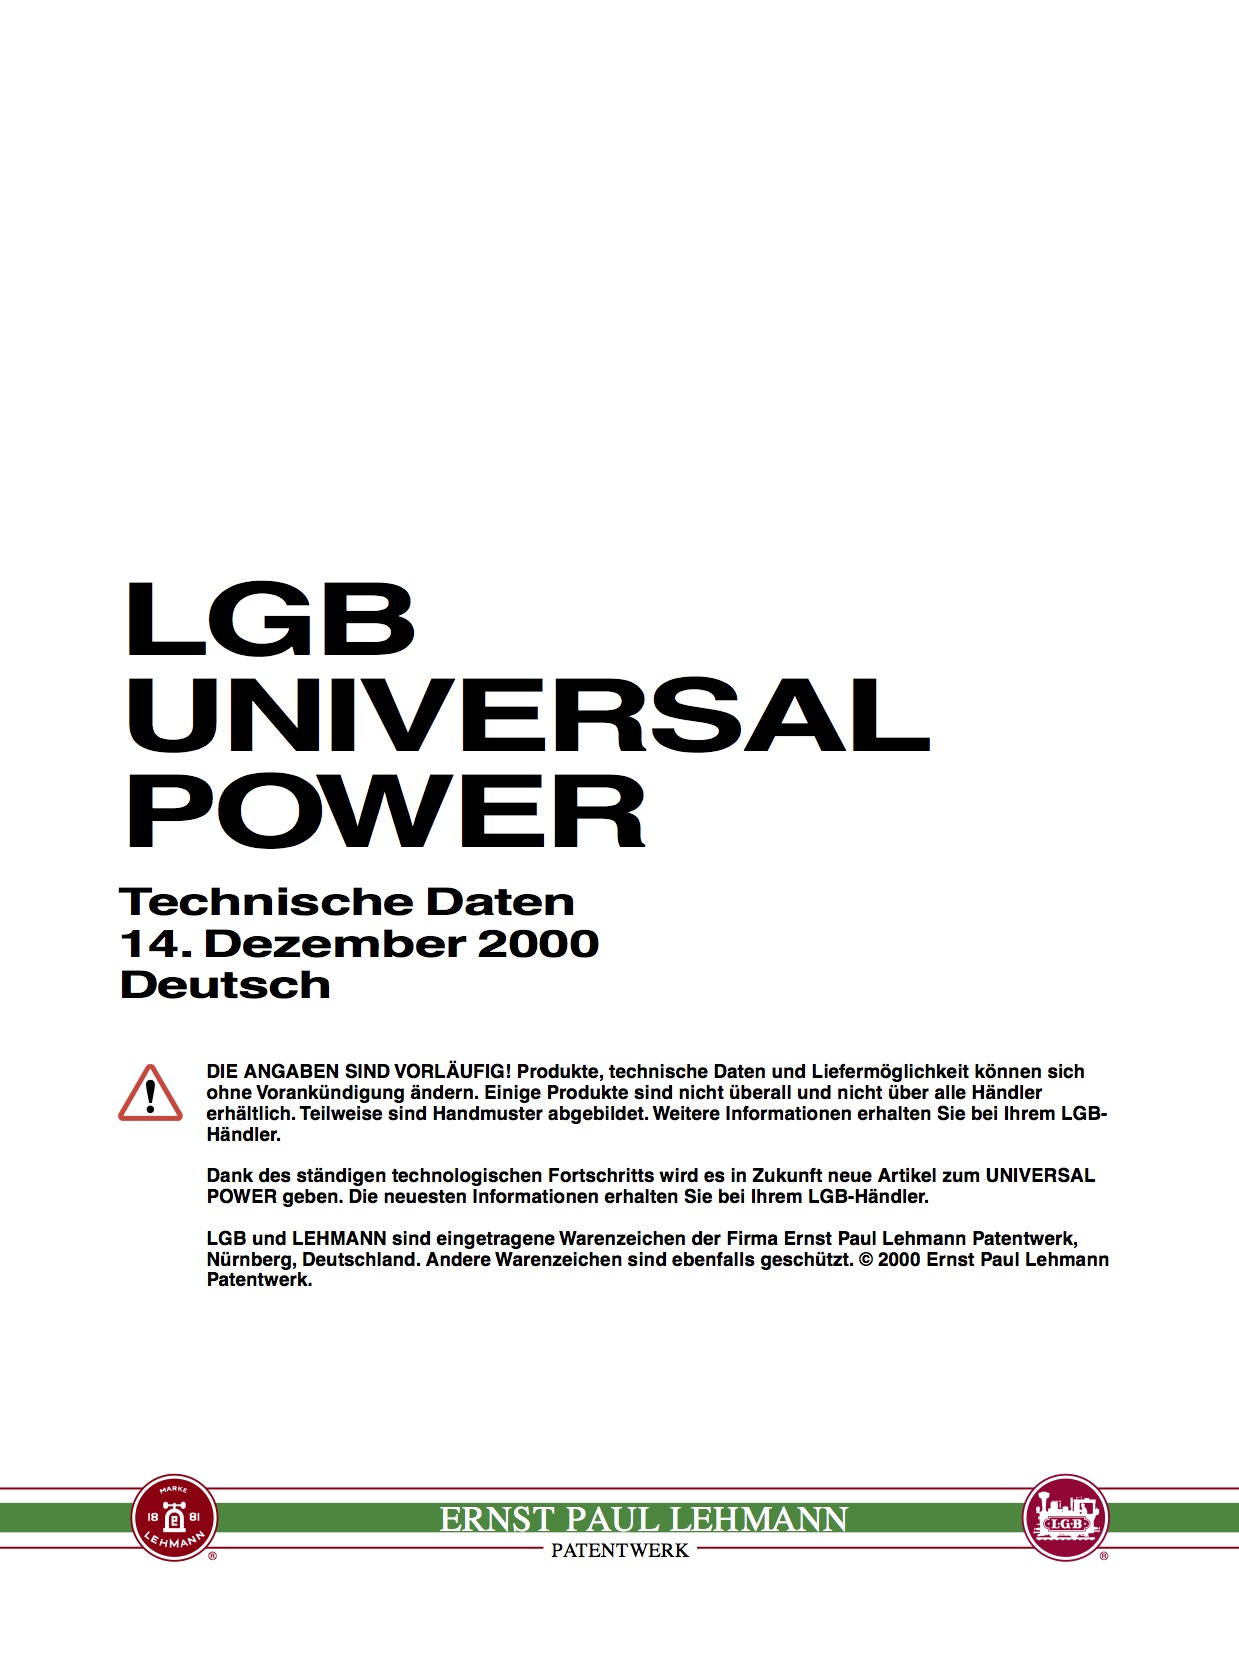 LGB White Paper 2000 - Universal Power, Deutsch